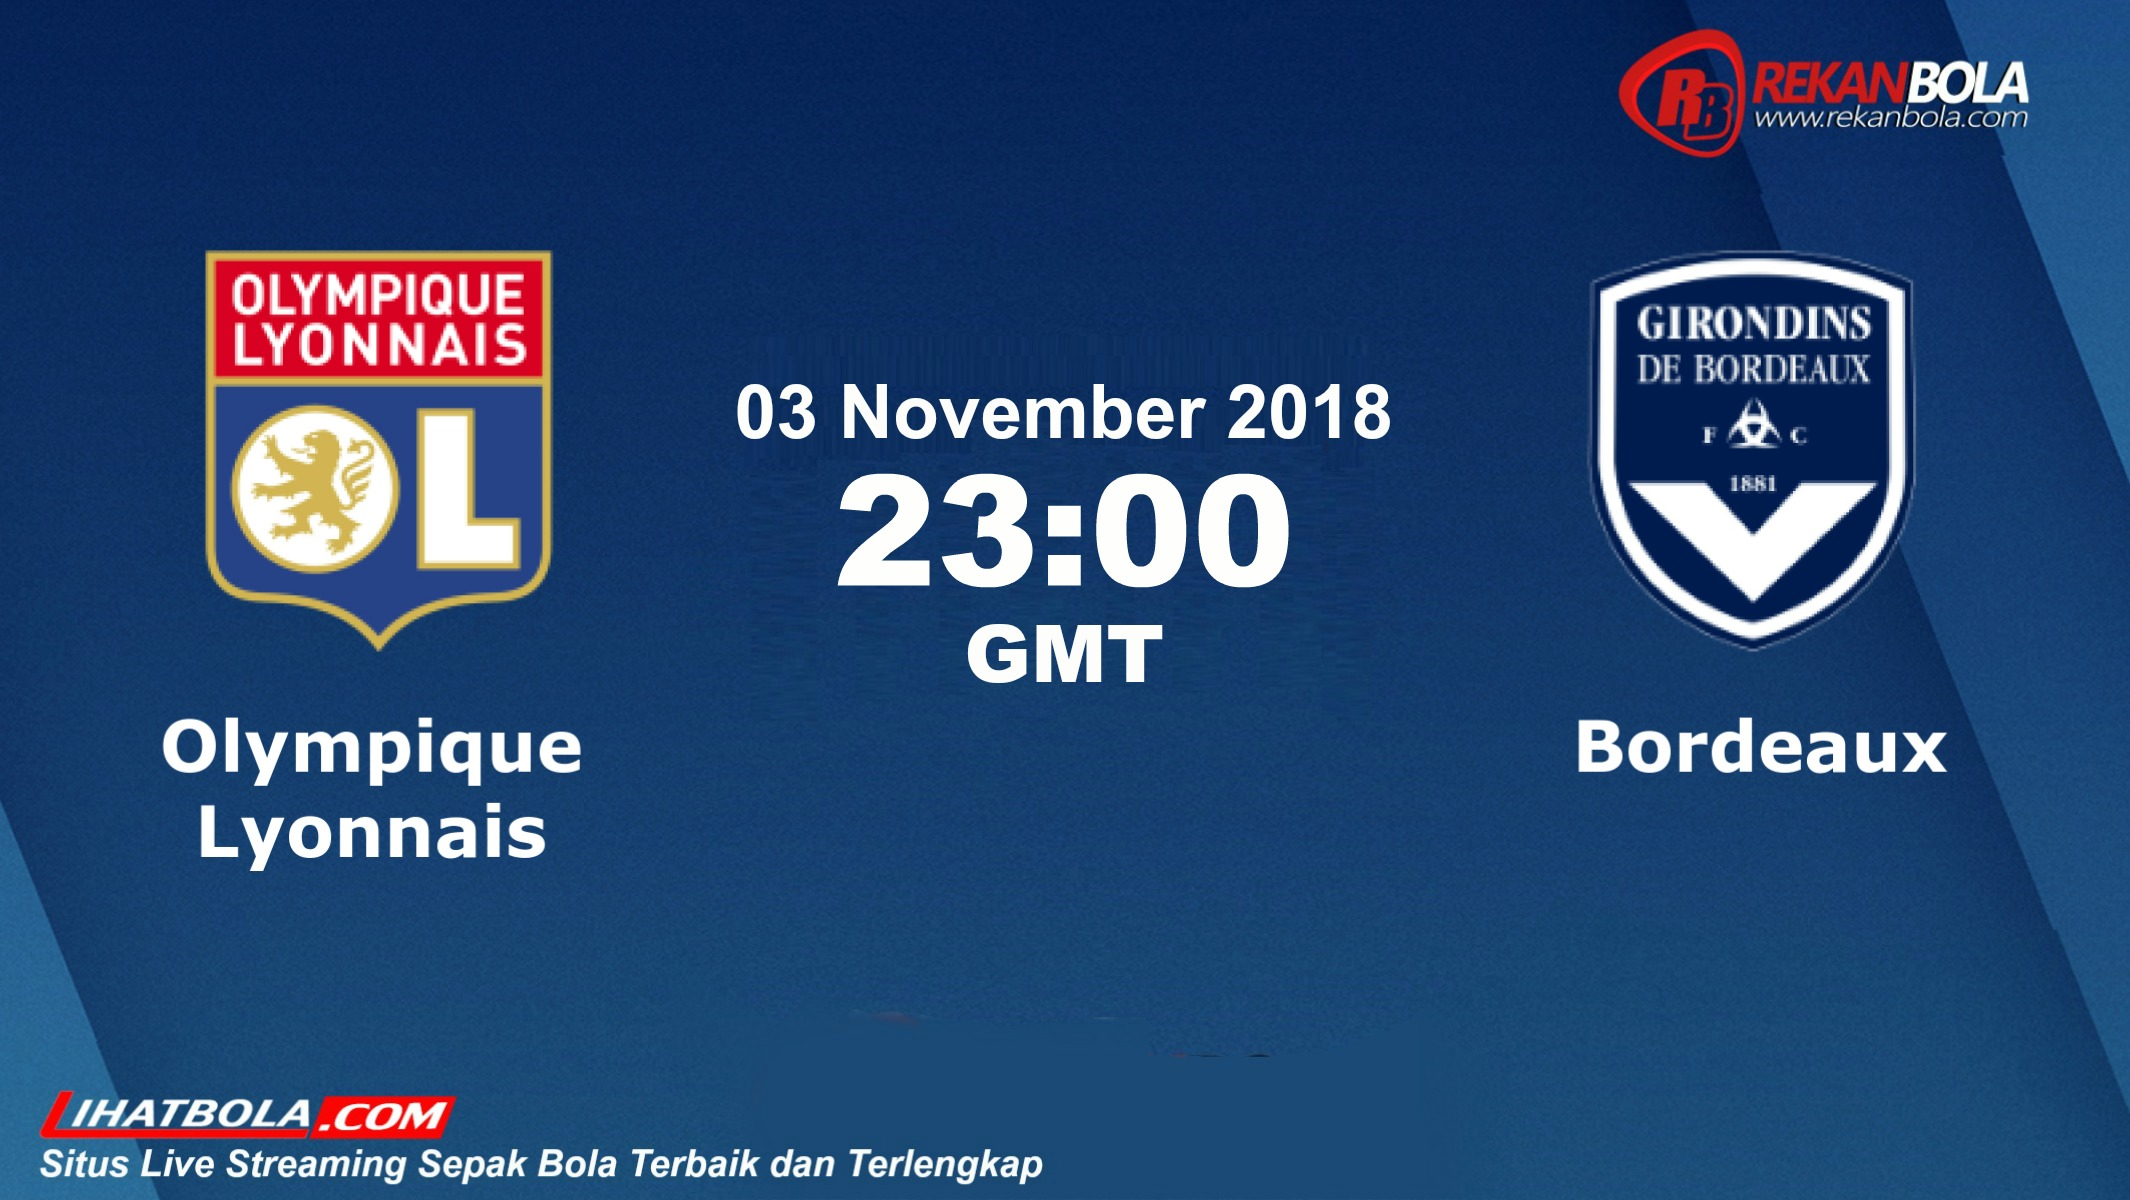 Nonton Siaran Live Streaming Lyon Vs Bordeaux 03 November 2018